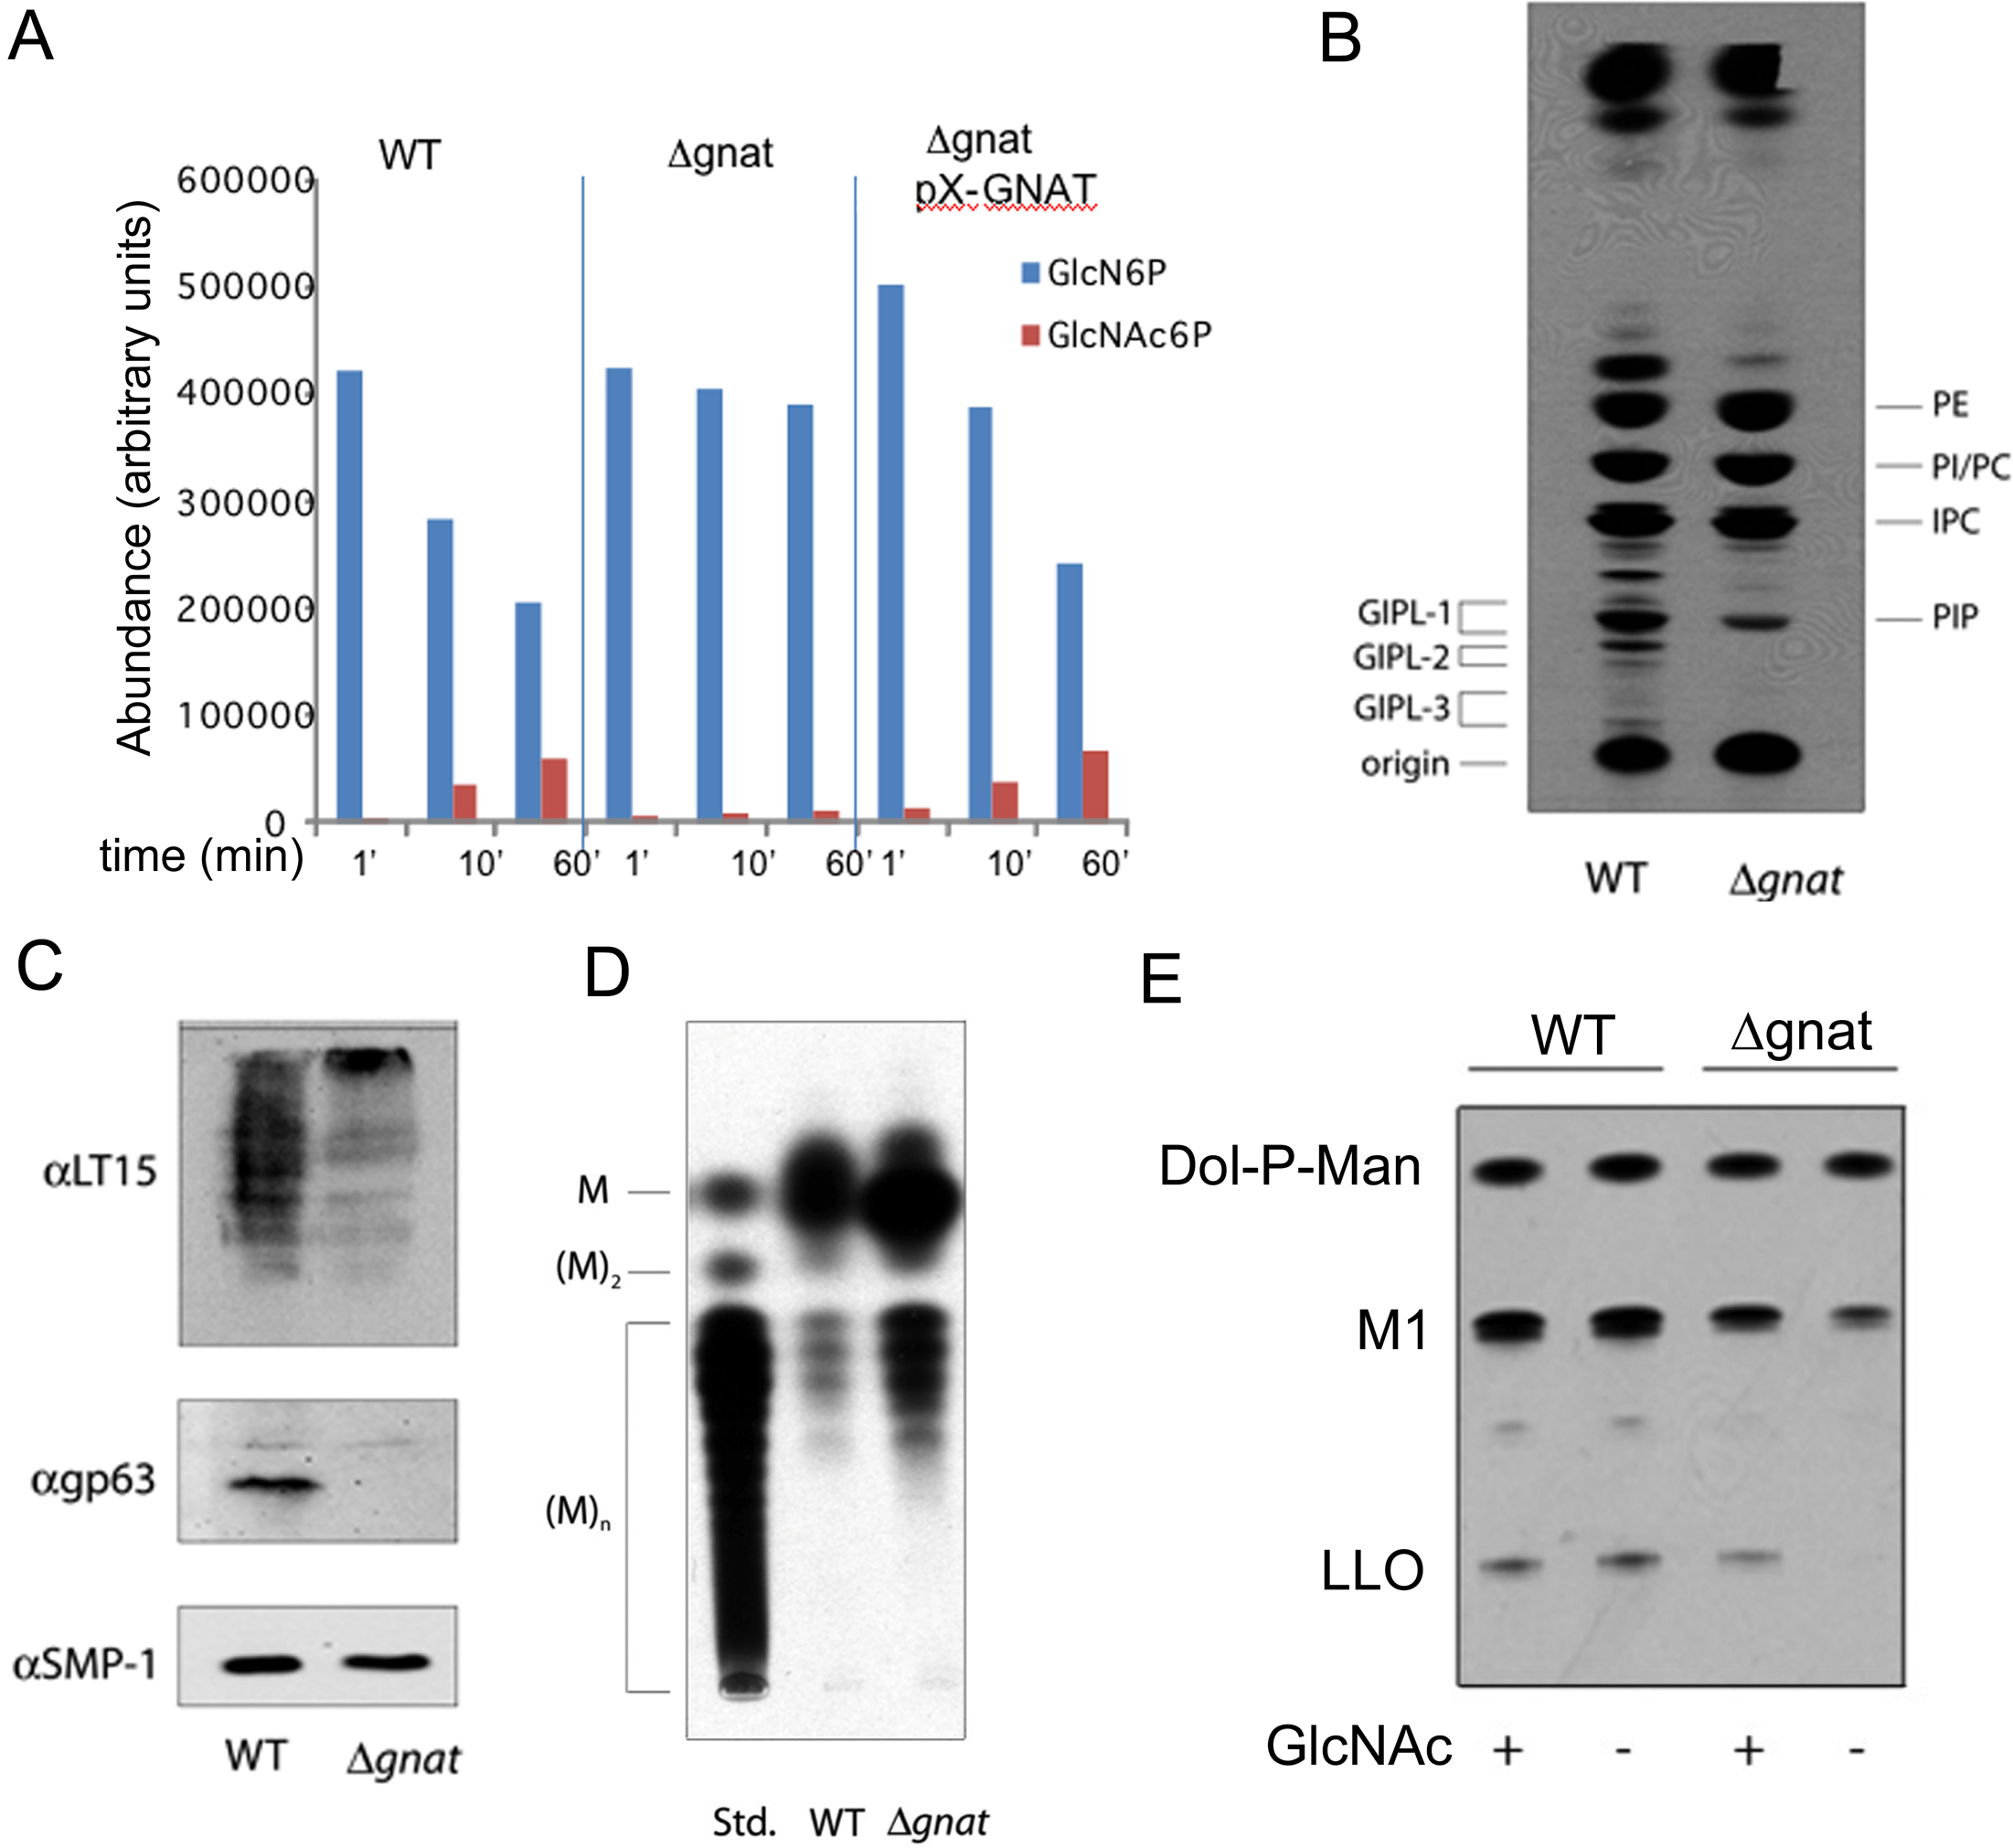 ∆<i>gnat</i> parasites lack GNAT activity and are defective in glycoconjugate biosynthesis.